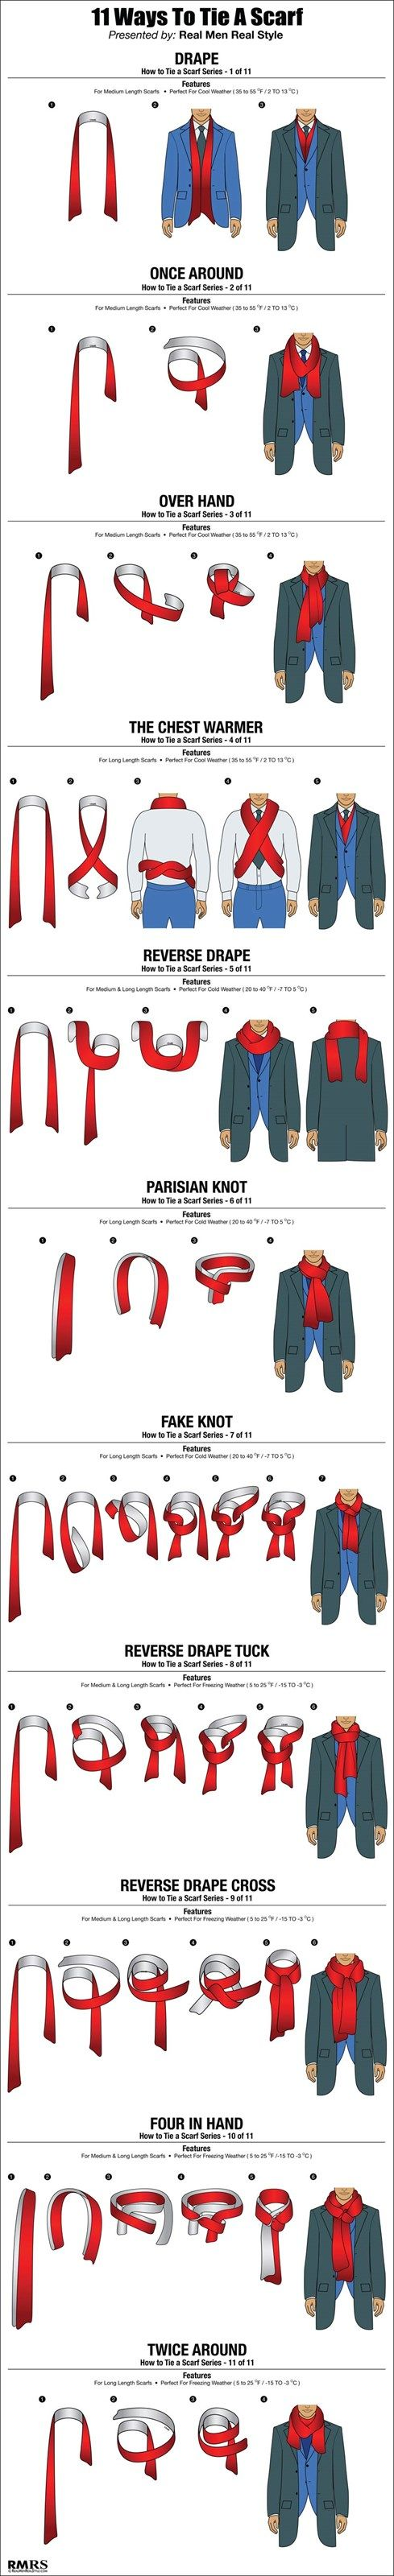 38 Best Winsor Knots Images On Pinterest Necktie Tie Balthus Knot How To A Agreeordie Be Warm And Fashionable With These Scarf